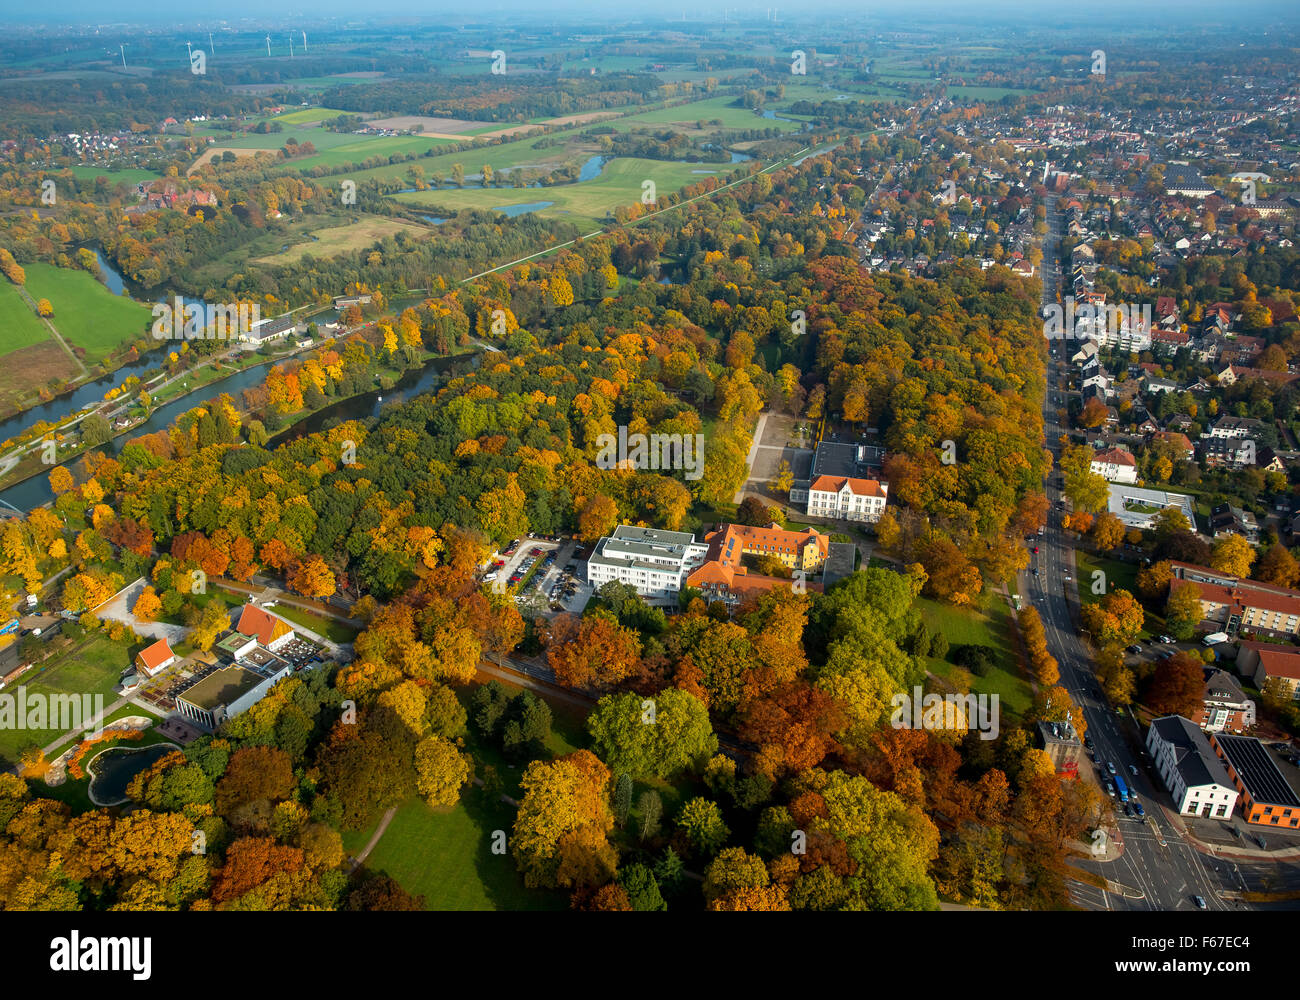 Clinic for Manual Therapy and Kurhaus Bad Hamm in autumn forest at Kurpark Hamm, Ruhrgebiet, North Rhine-Westphalia, - Stock Image